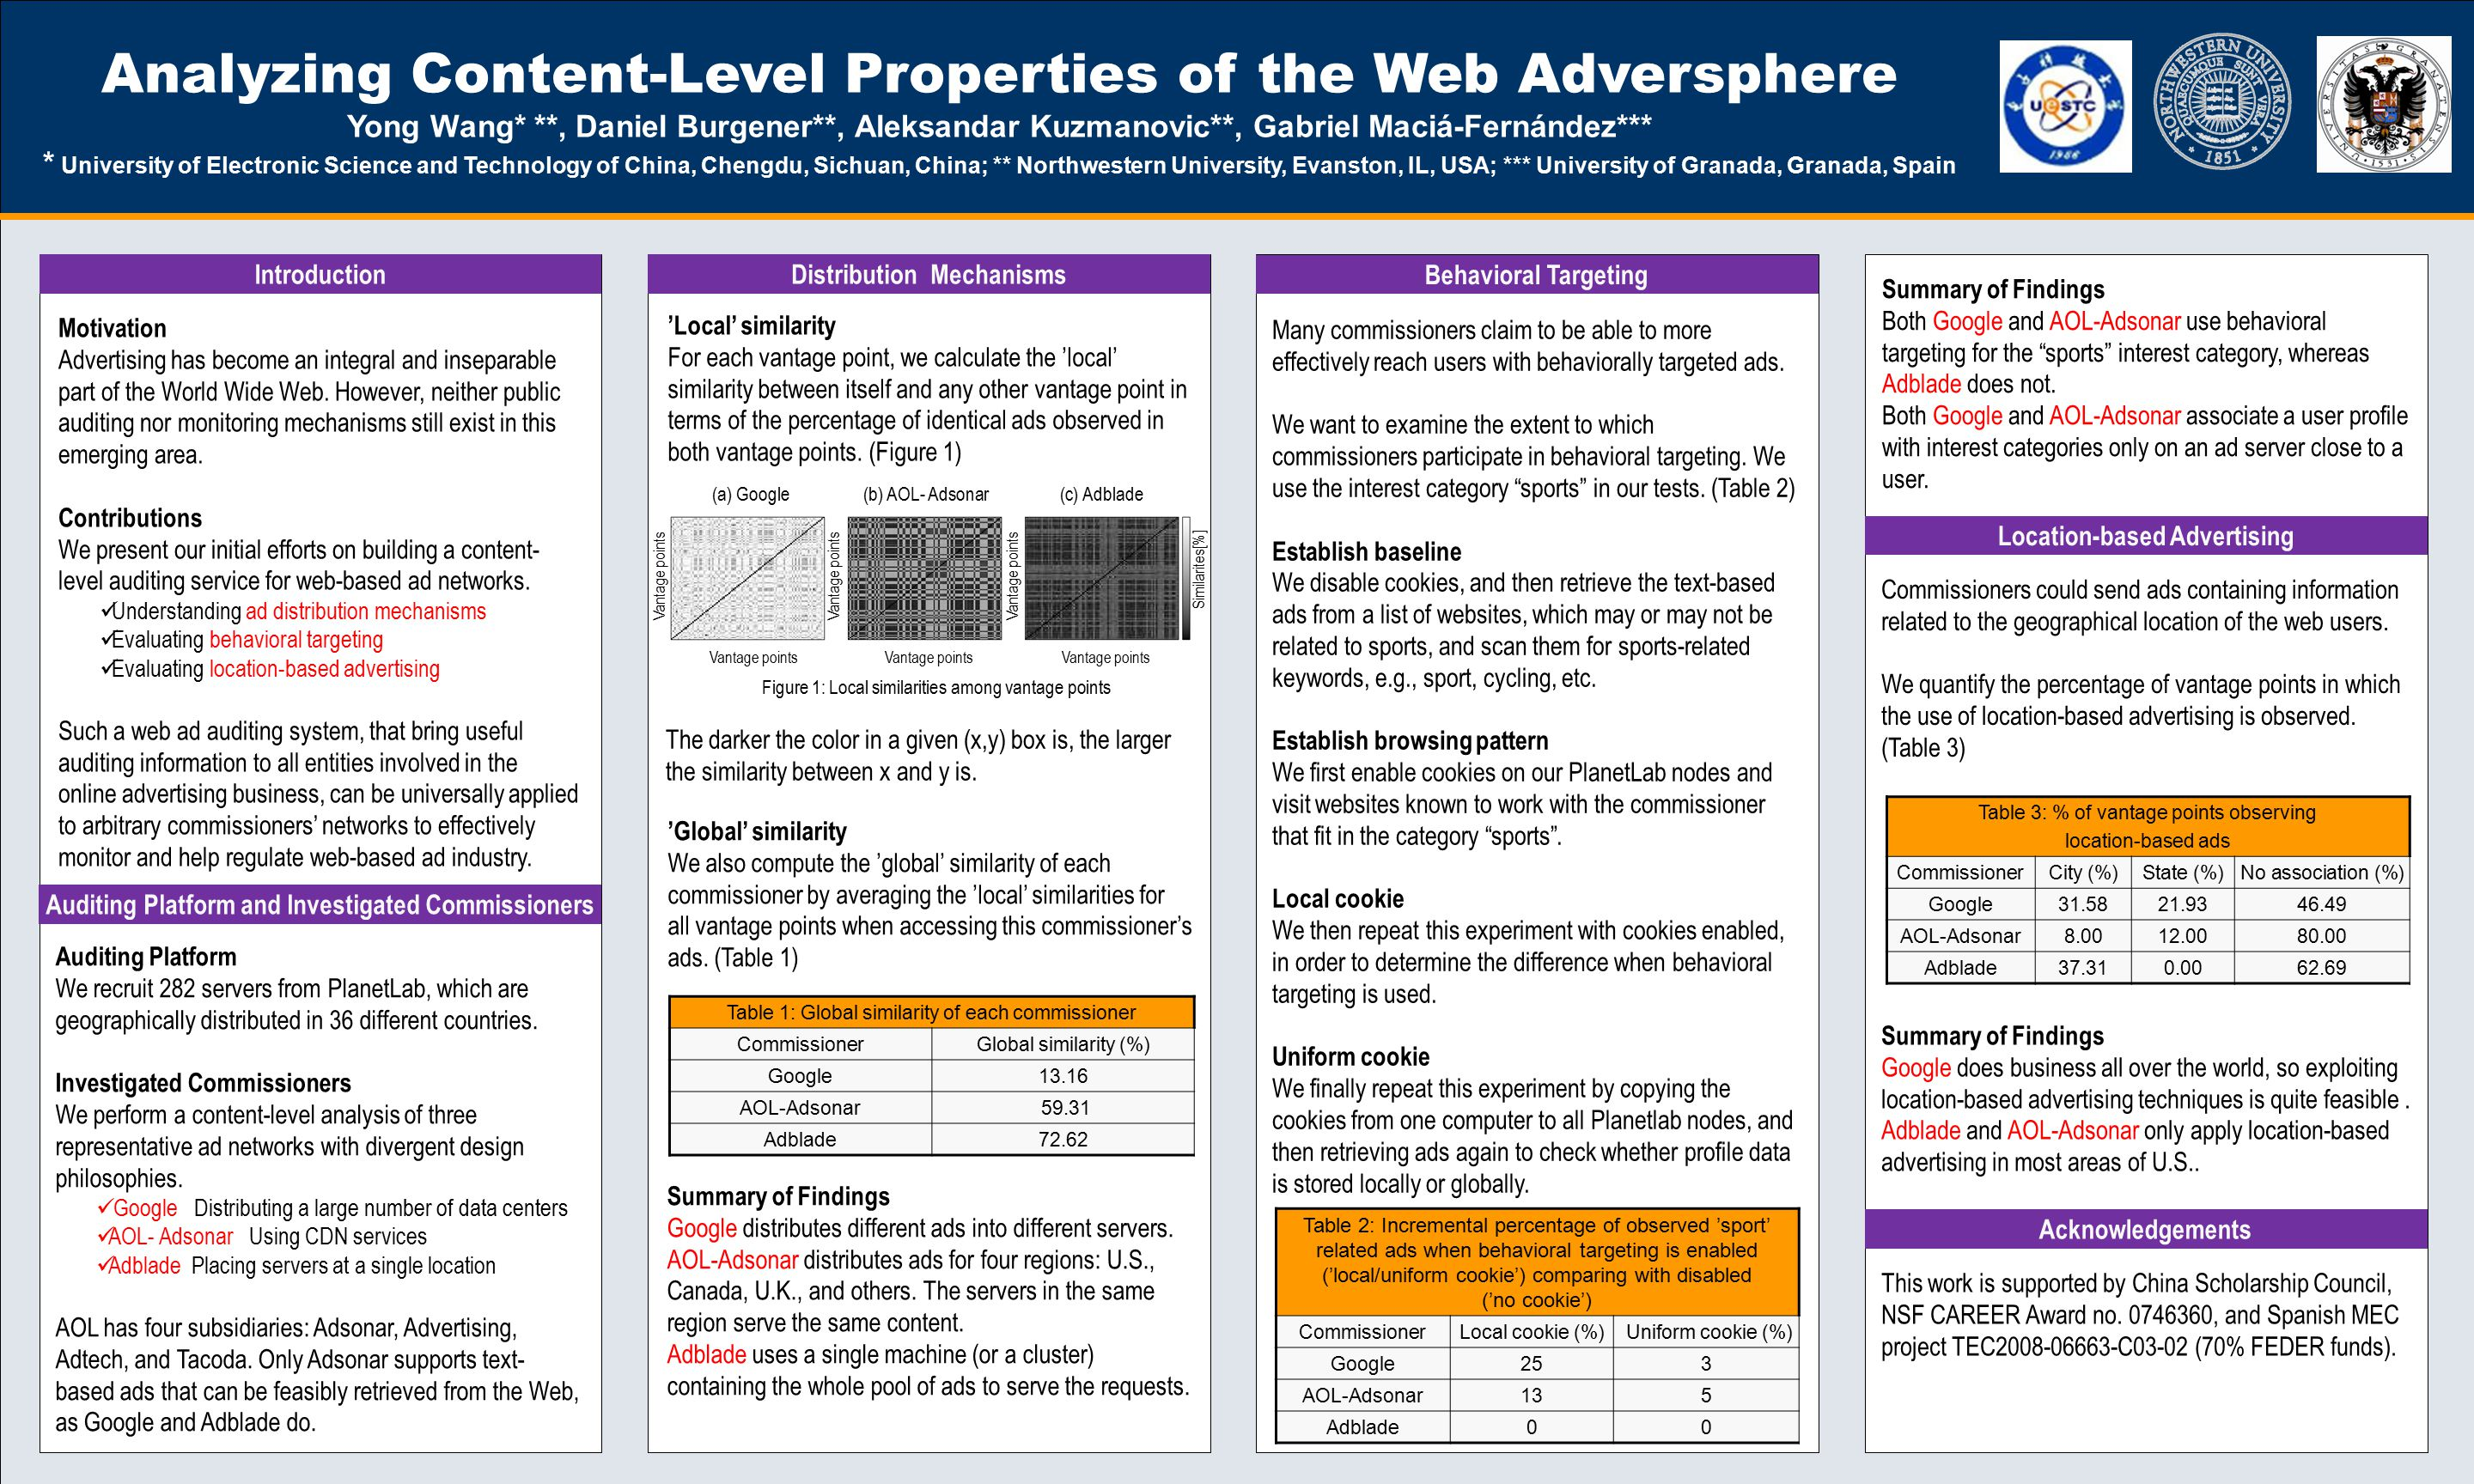 Analyzing Content-Level Properties of the Web Adversphere Yong Wang* **, Daniel Burgener**, Aleksandar Kuzmanovic**, Gabriel Maciá-Fernández*** * University of Electronic Science and Technology of China, Chengdu, Sichuan, China; ** Northwestern University, Evanston, IL, USA; *** University of Granada, Granada, Spain Introduction Location-based Advertising Behavioral Targeting Acknowledgements Motivation Advertising has become an integral and inseparable part of the World Wide Web.